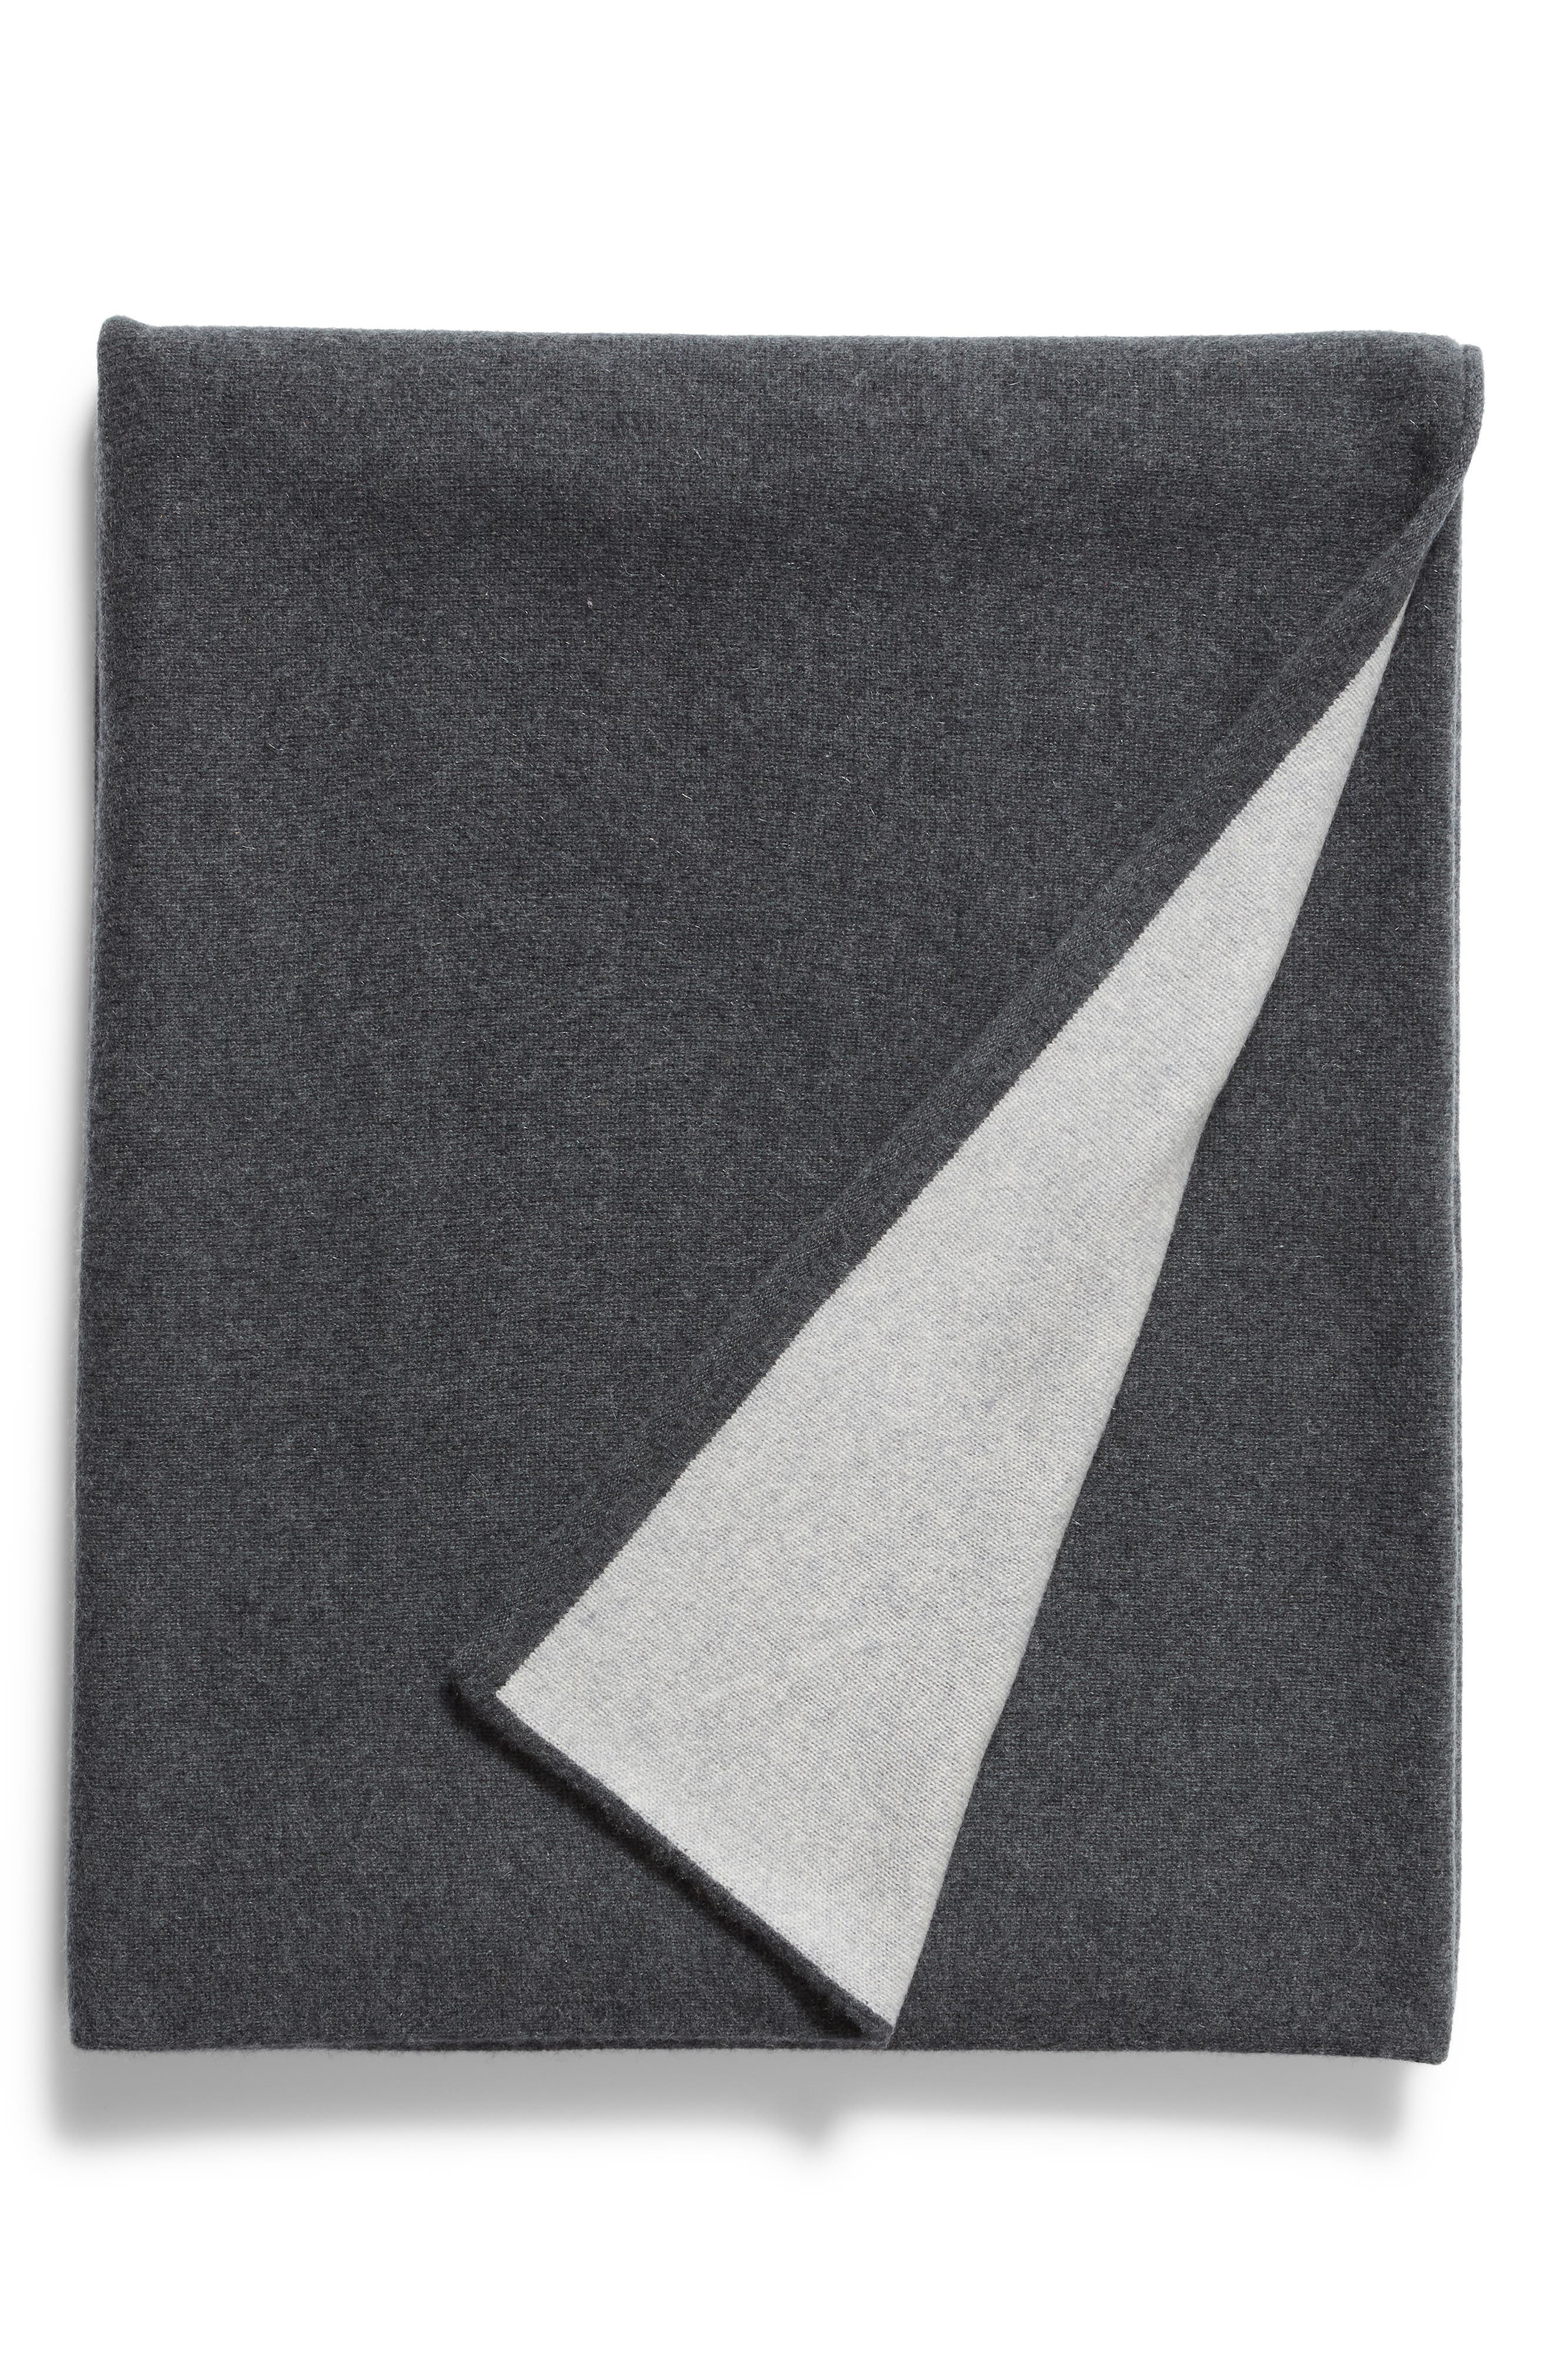 NORDSTROM SIGNATURE, Double Knit Cashmere Throw, Main thumbnail 1, color, GREY CLAY HEATHER